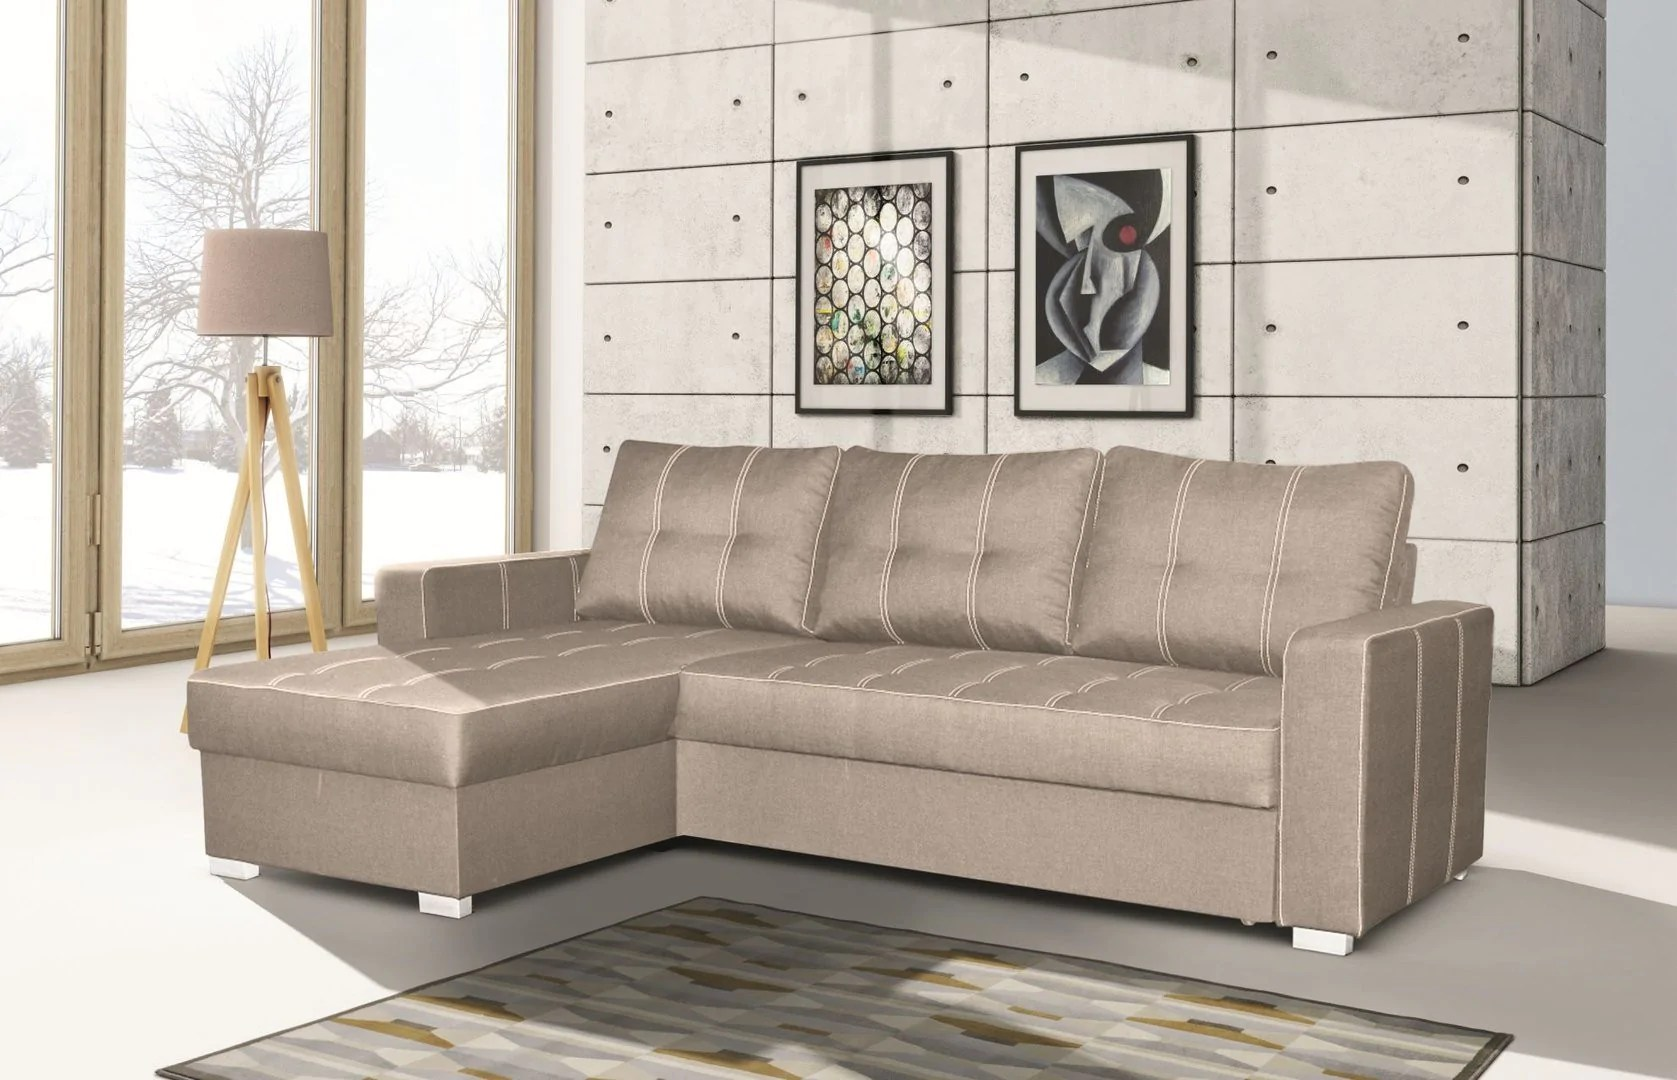 buy corner sofa uk pull out sleeper sale bed dallas aberdeen furniture co